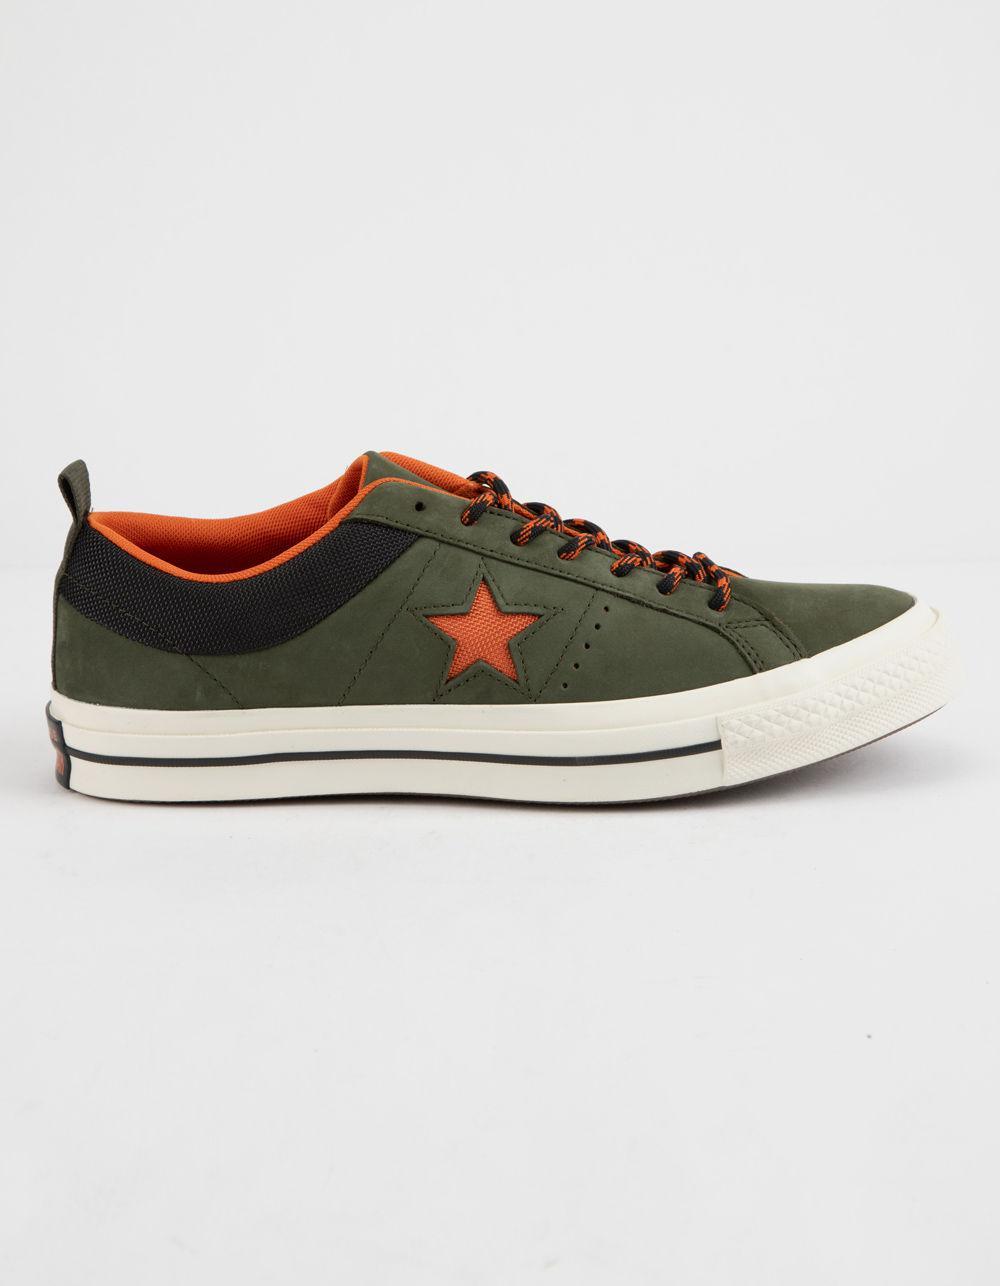 ba49ecf441e Lyst - Converse One Star Ox Sierra Low Top Shoes in Green